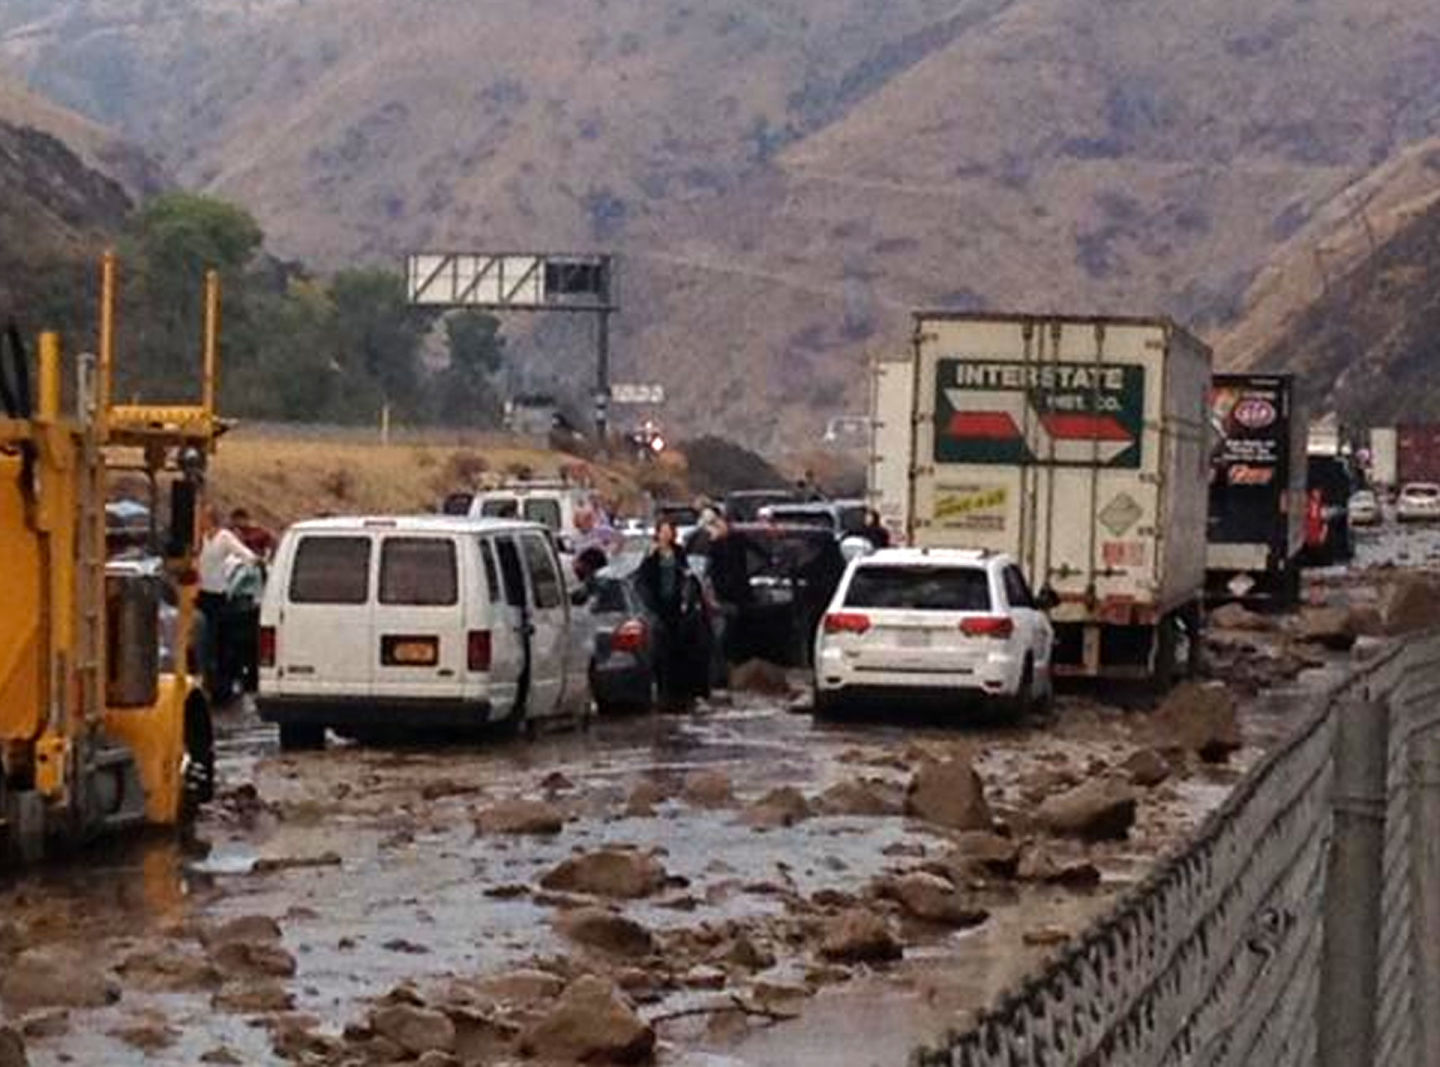 I-5 Now Open, Other Highways Still Blocked After Mudslides | The